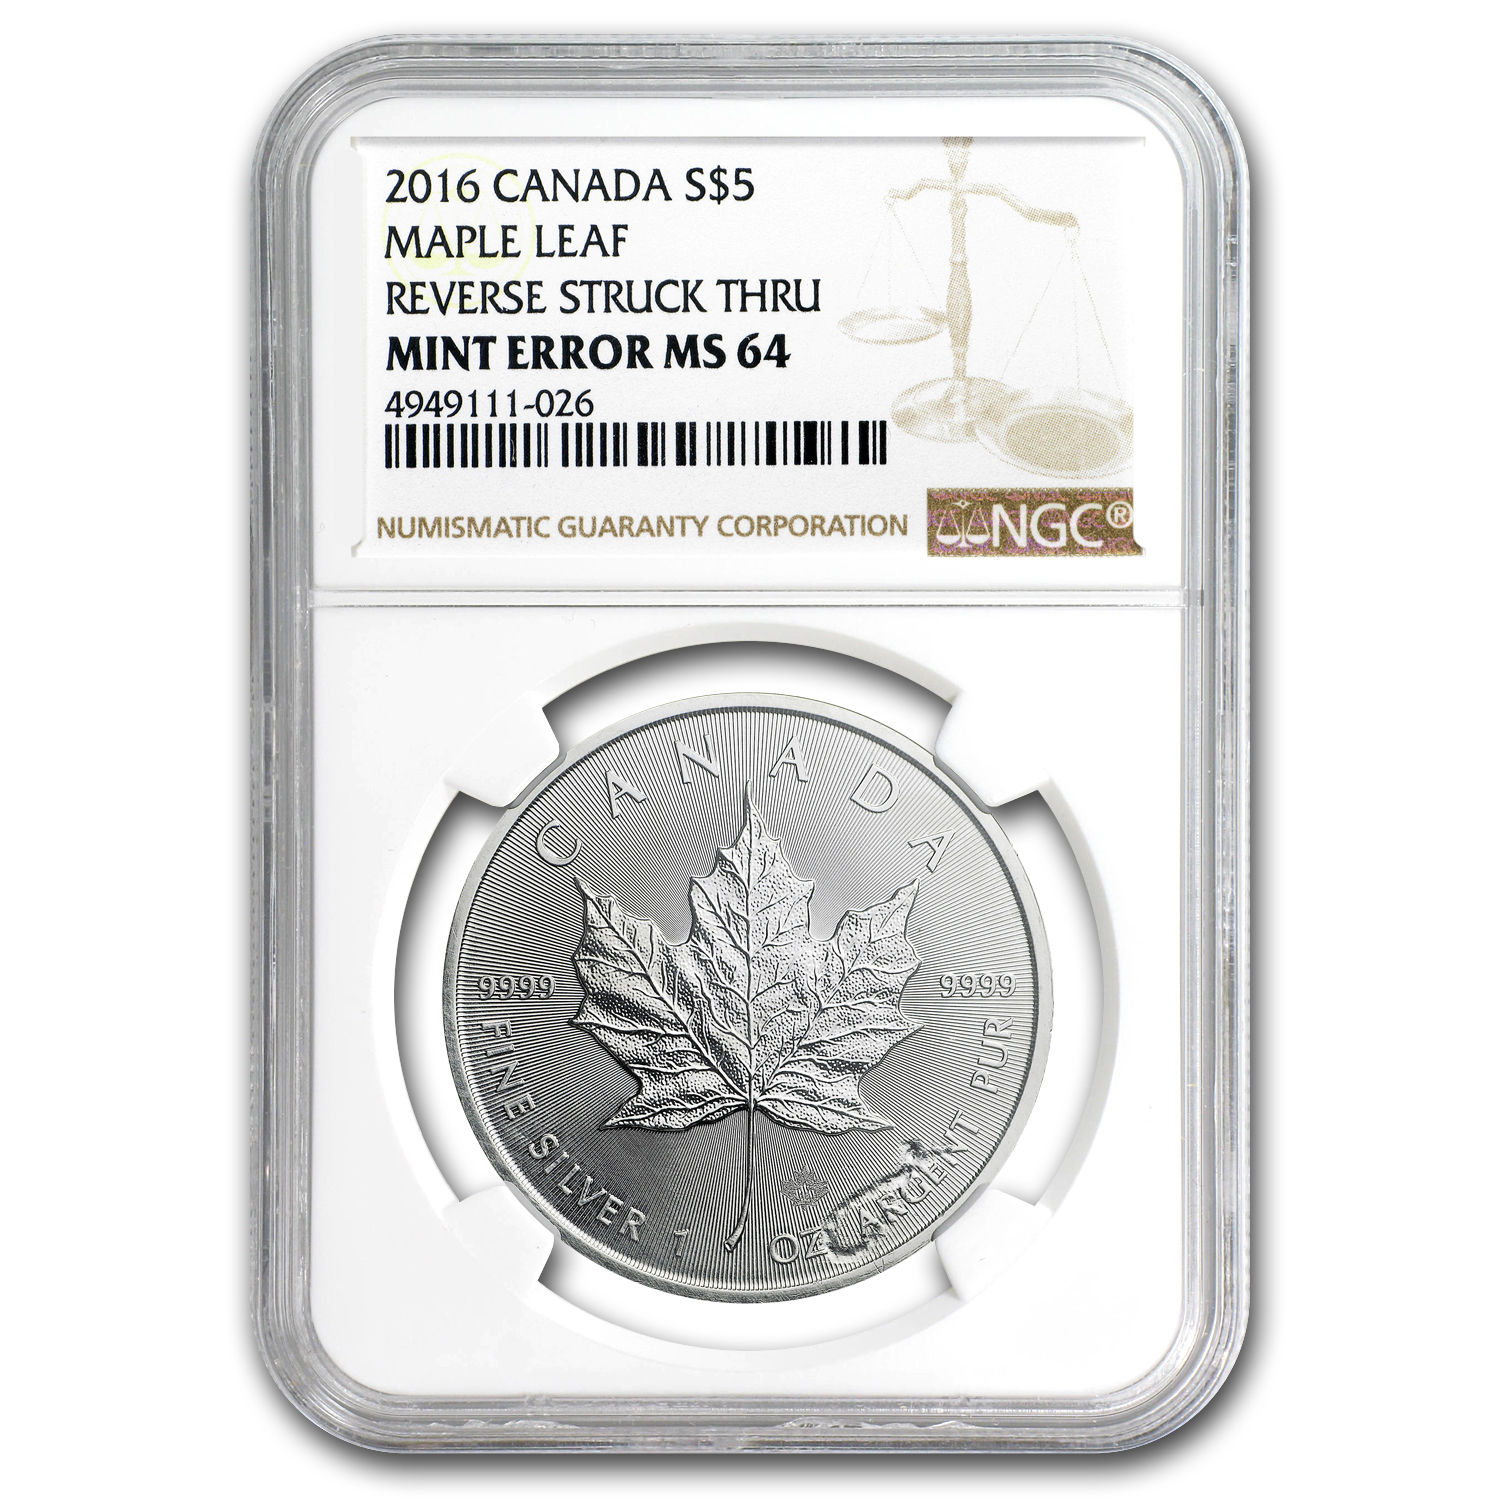 2016 Canada 1 oz Silver Maple Leaf MS-64 NGC (Rev Mint Error)